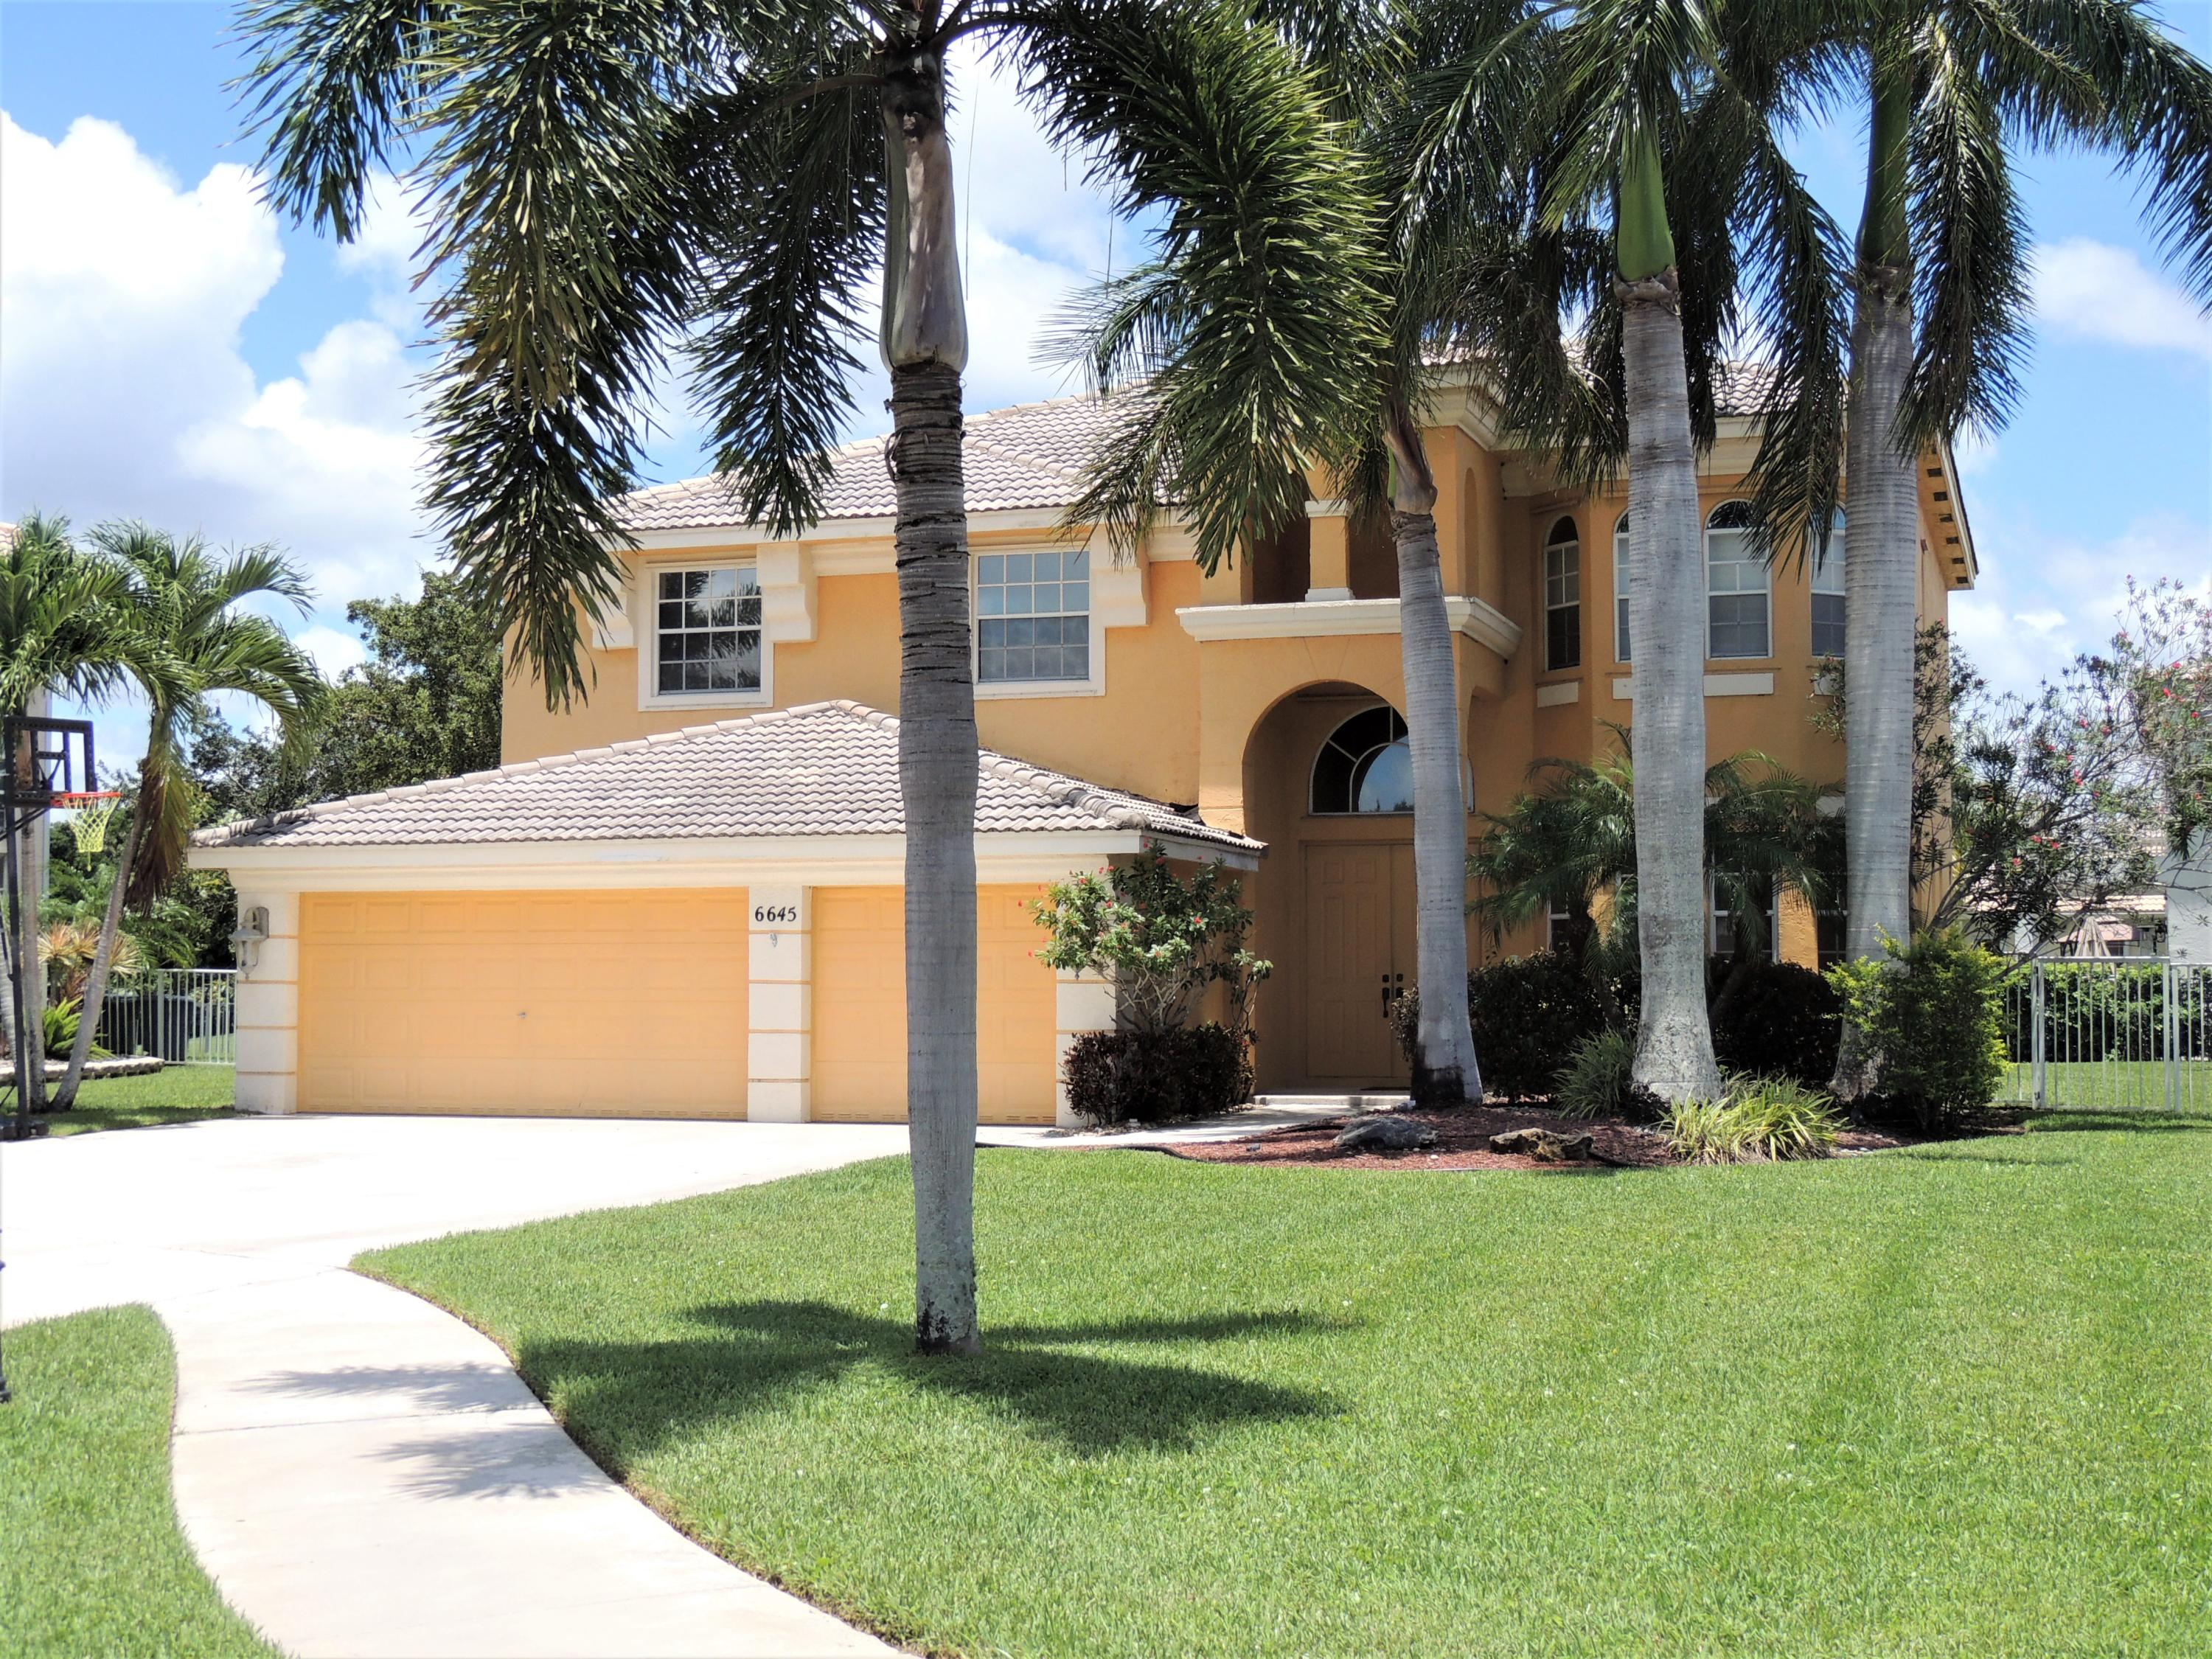 6645 Marbletree Lane, Lake Worth, Florida 33467, 5 Bedrooms Bedrooms, ,3 BathroomsBathrooms,Single family detached,For sale,Marbletree,RX-10631732